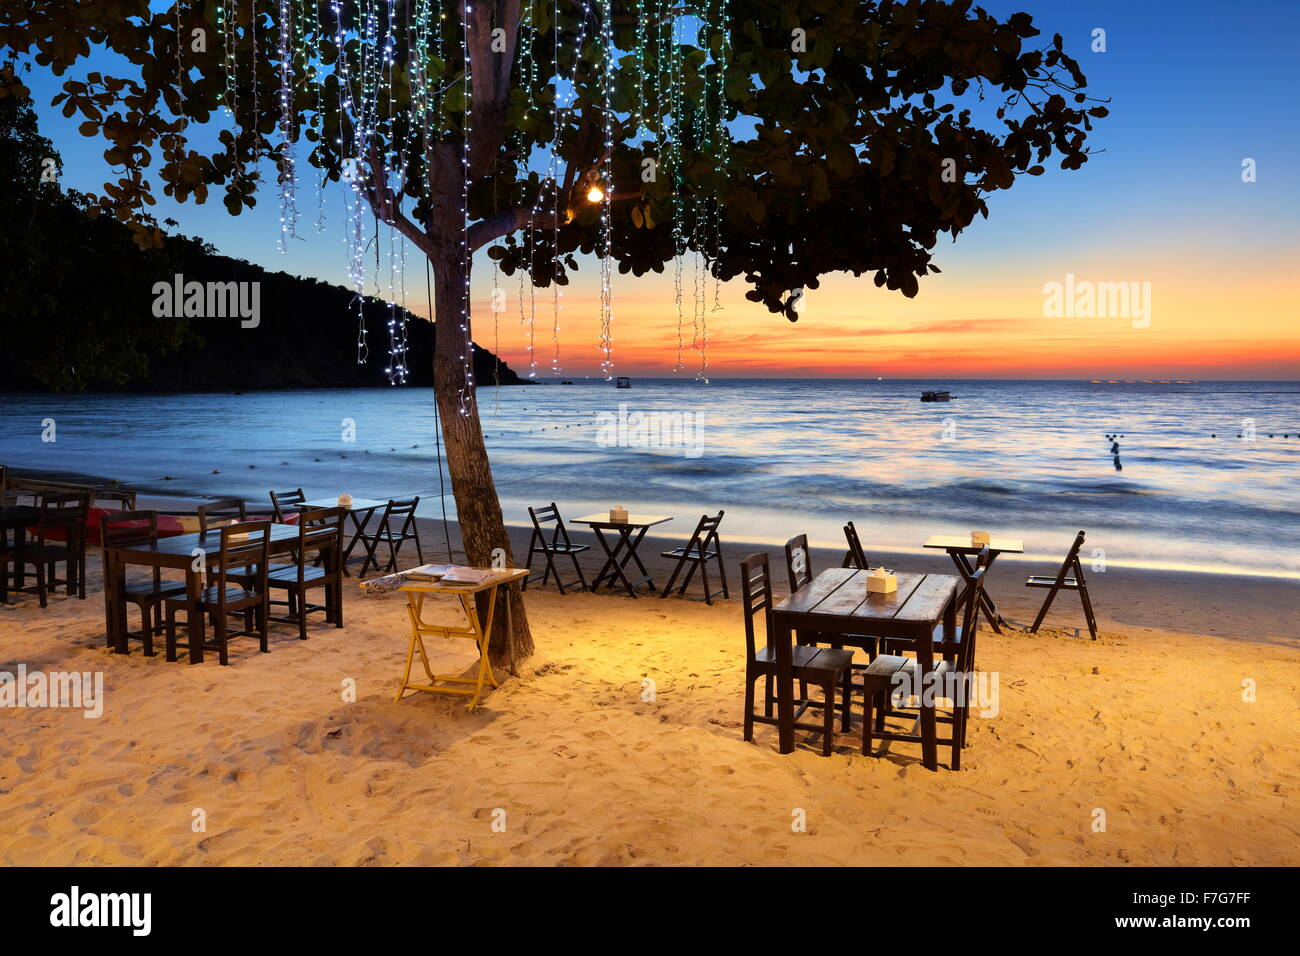 Beach restaurant at sunset, Lima Coco Resort, Ko Samet Island, Thailand - Stock Image